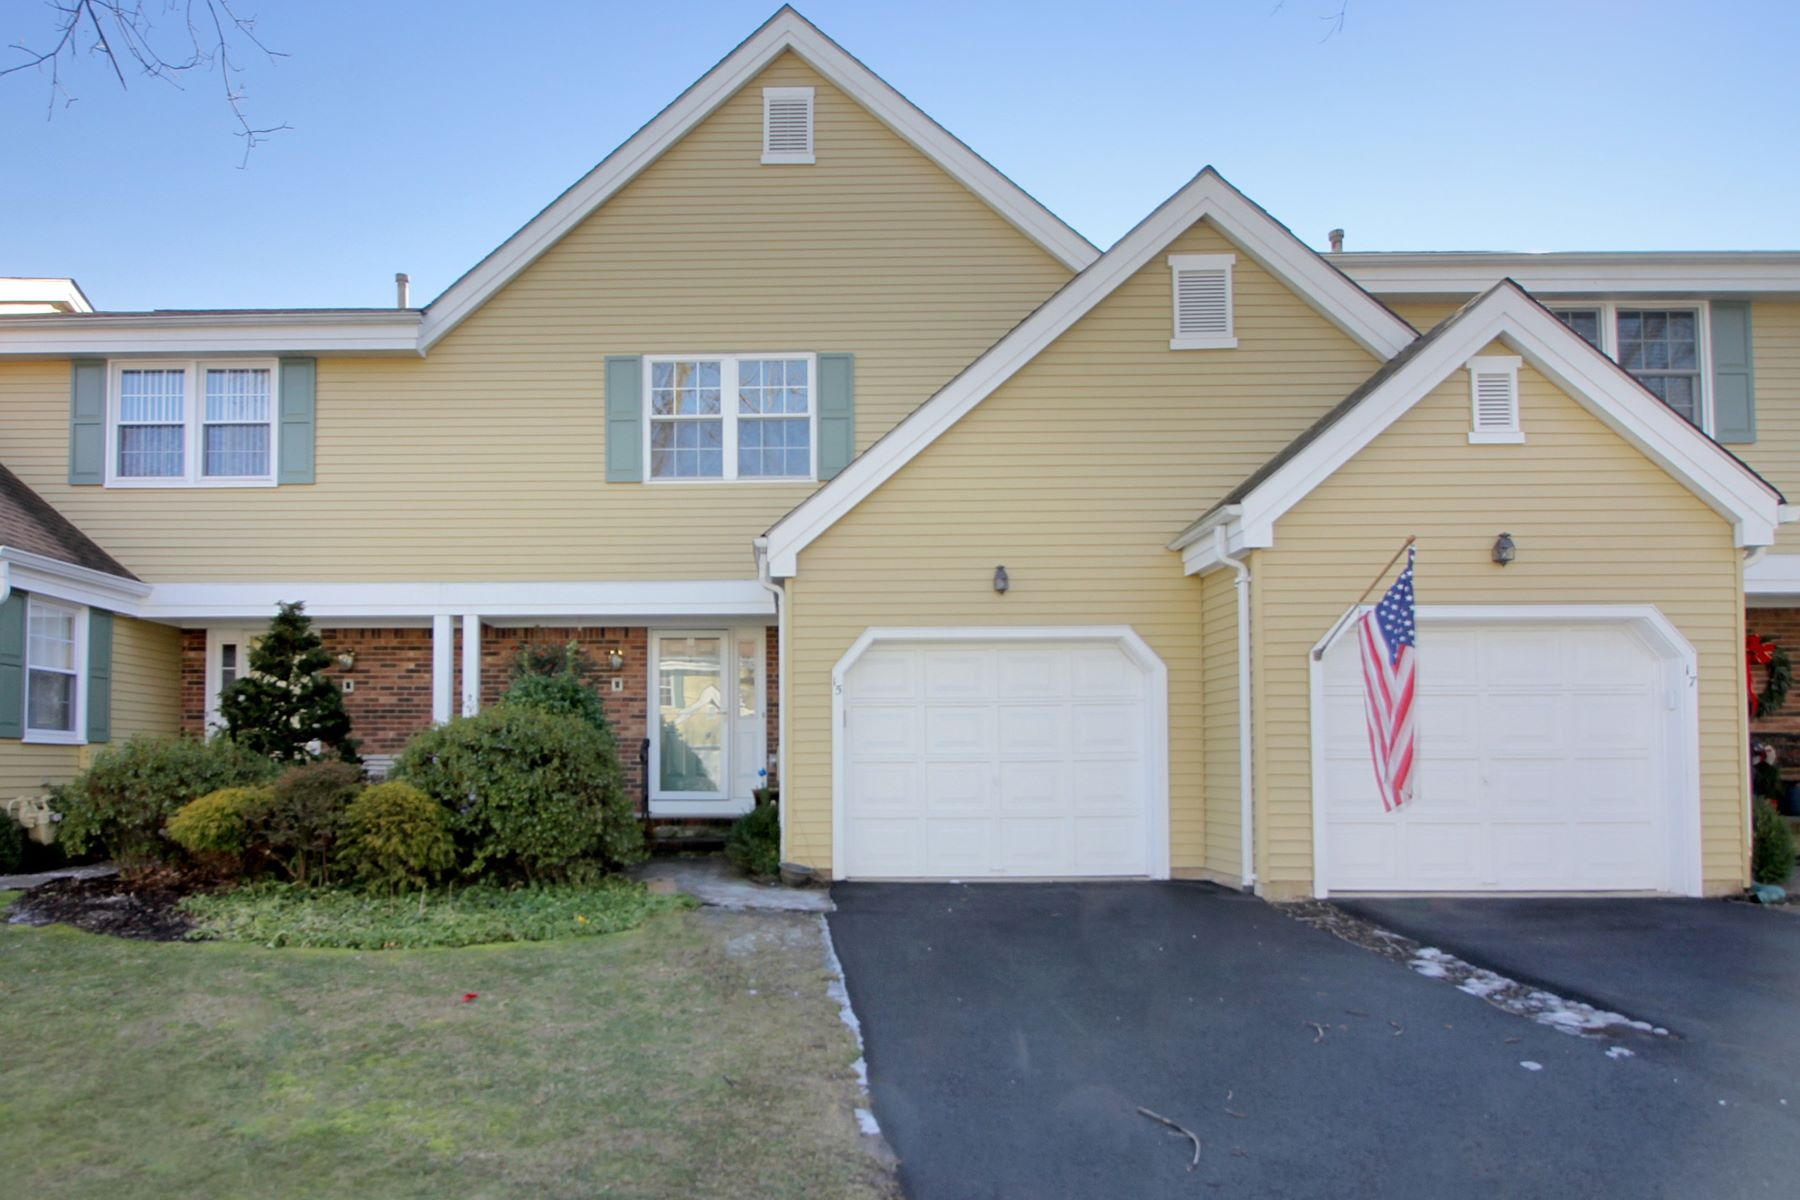 townhouses for Sale at Commuter's Dream Townhome 15 Thomas Paine Road Morristown, New Jersey 07960 United States